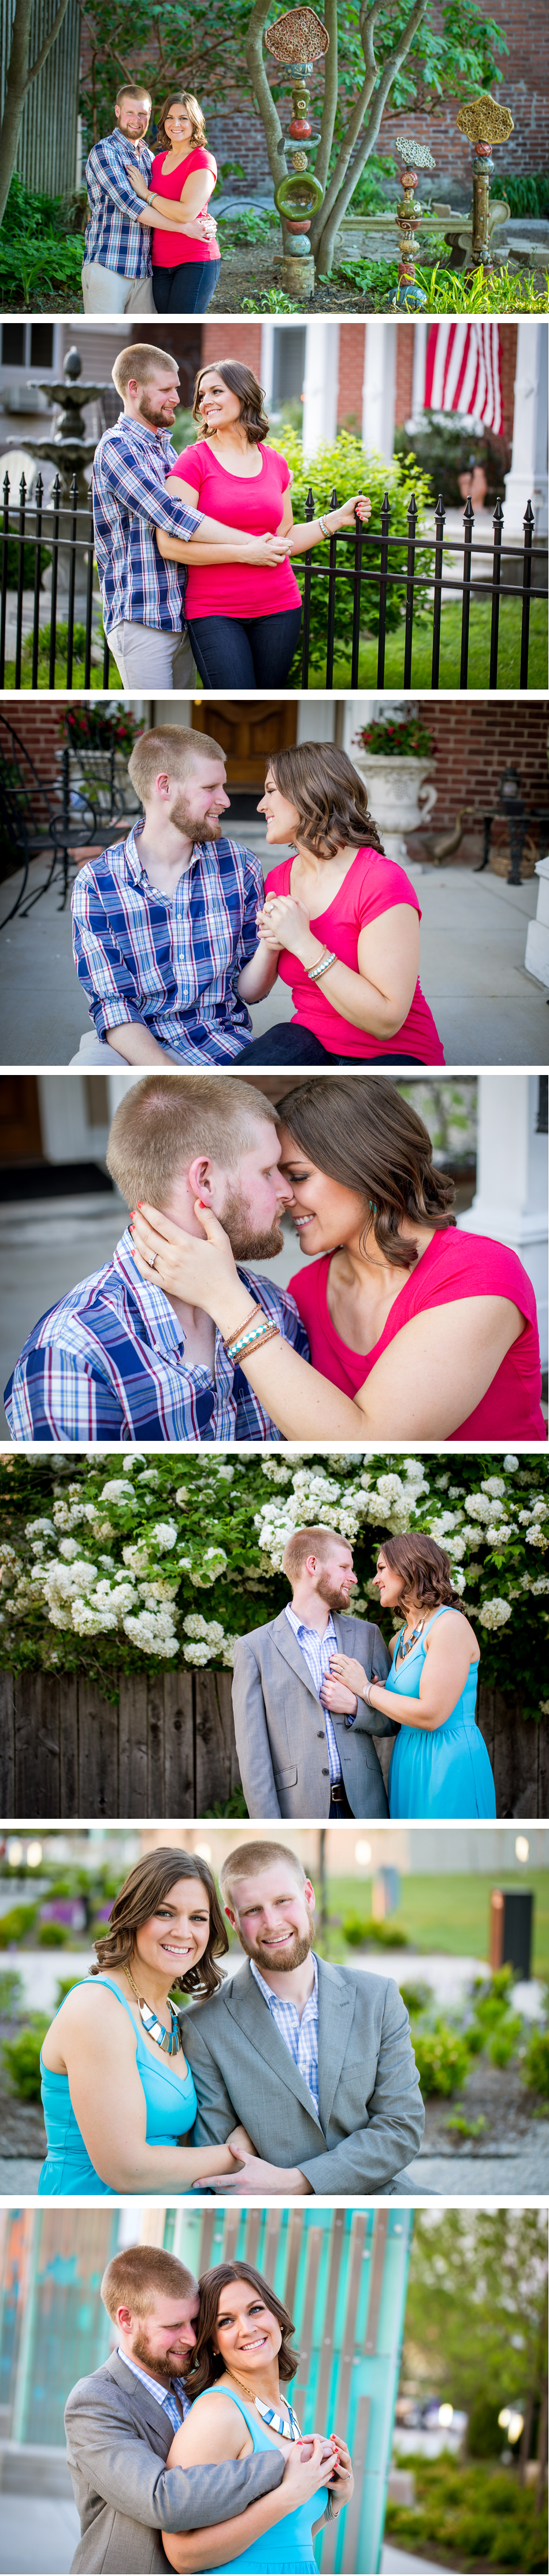 Jeffersonville IN engagement photo eMotion image